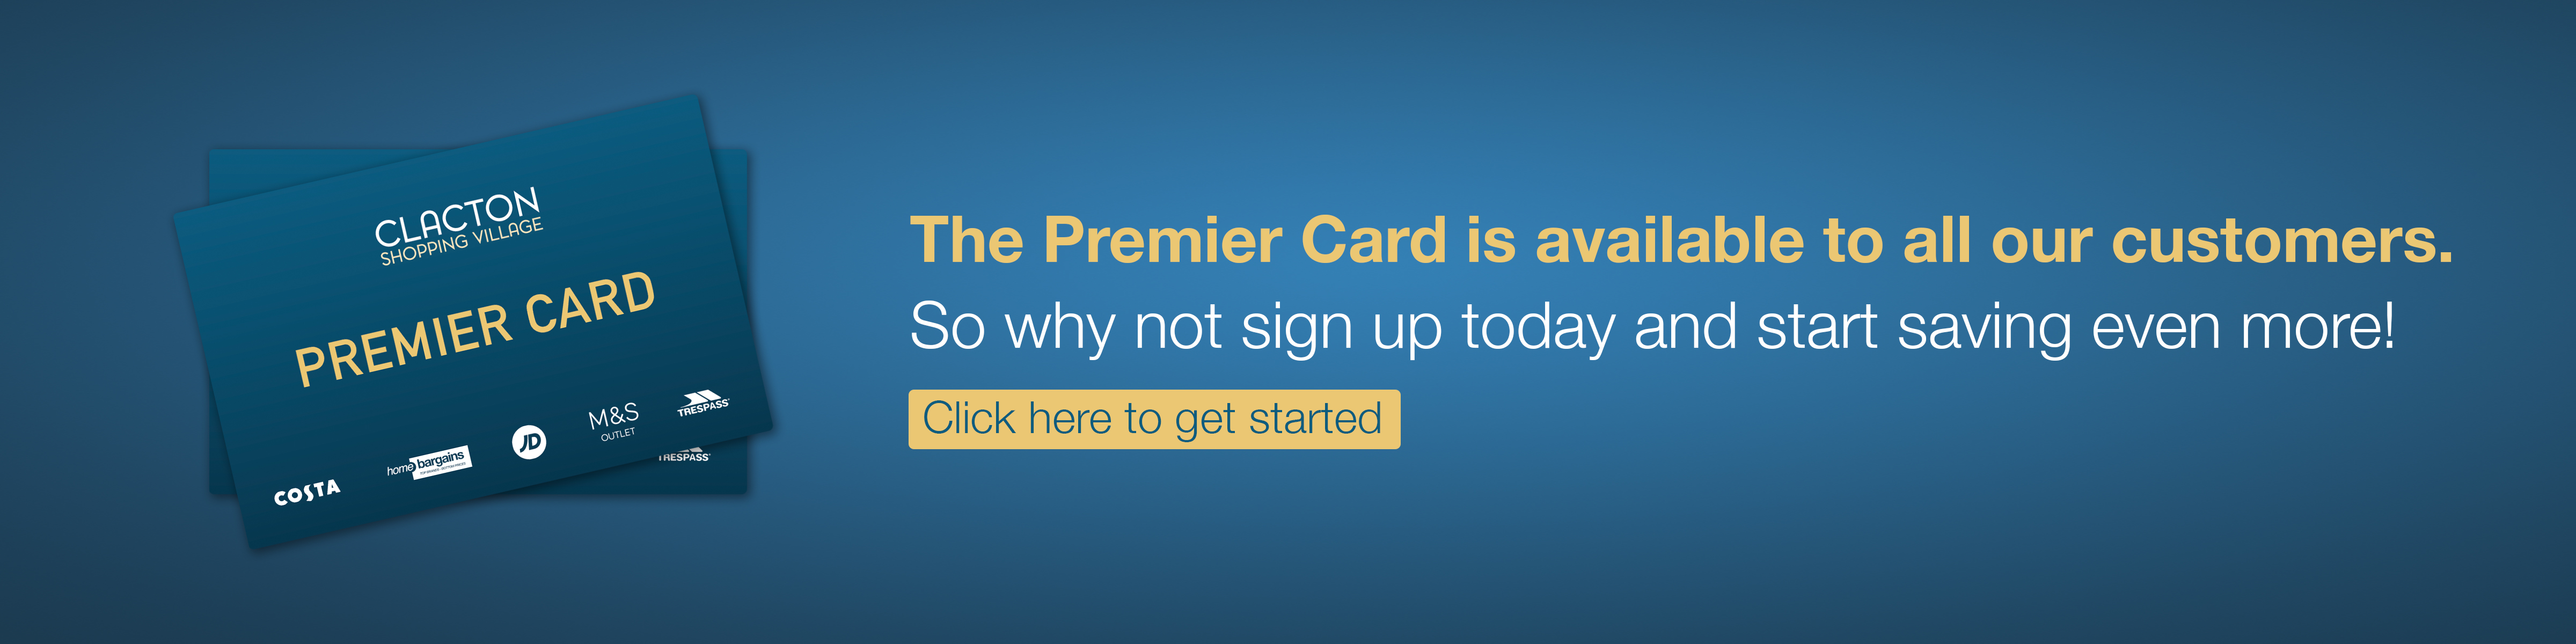 Join Our Premier Card